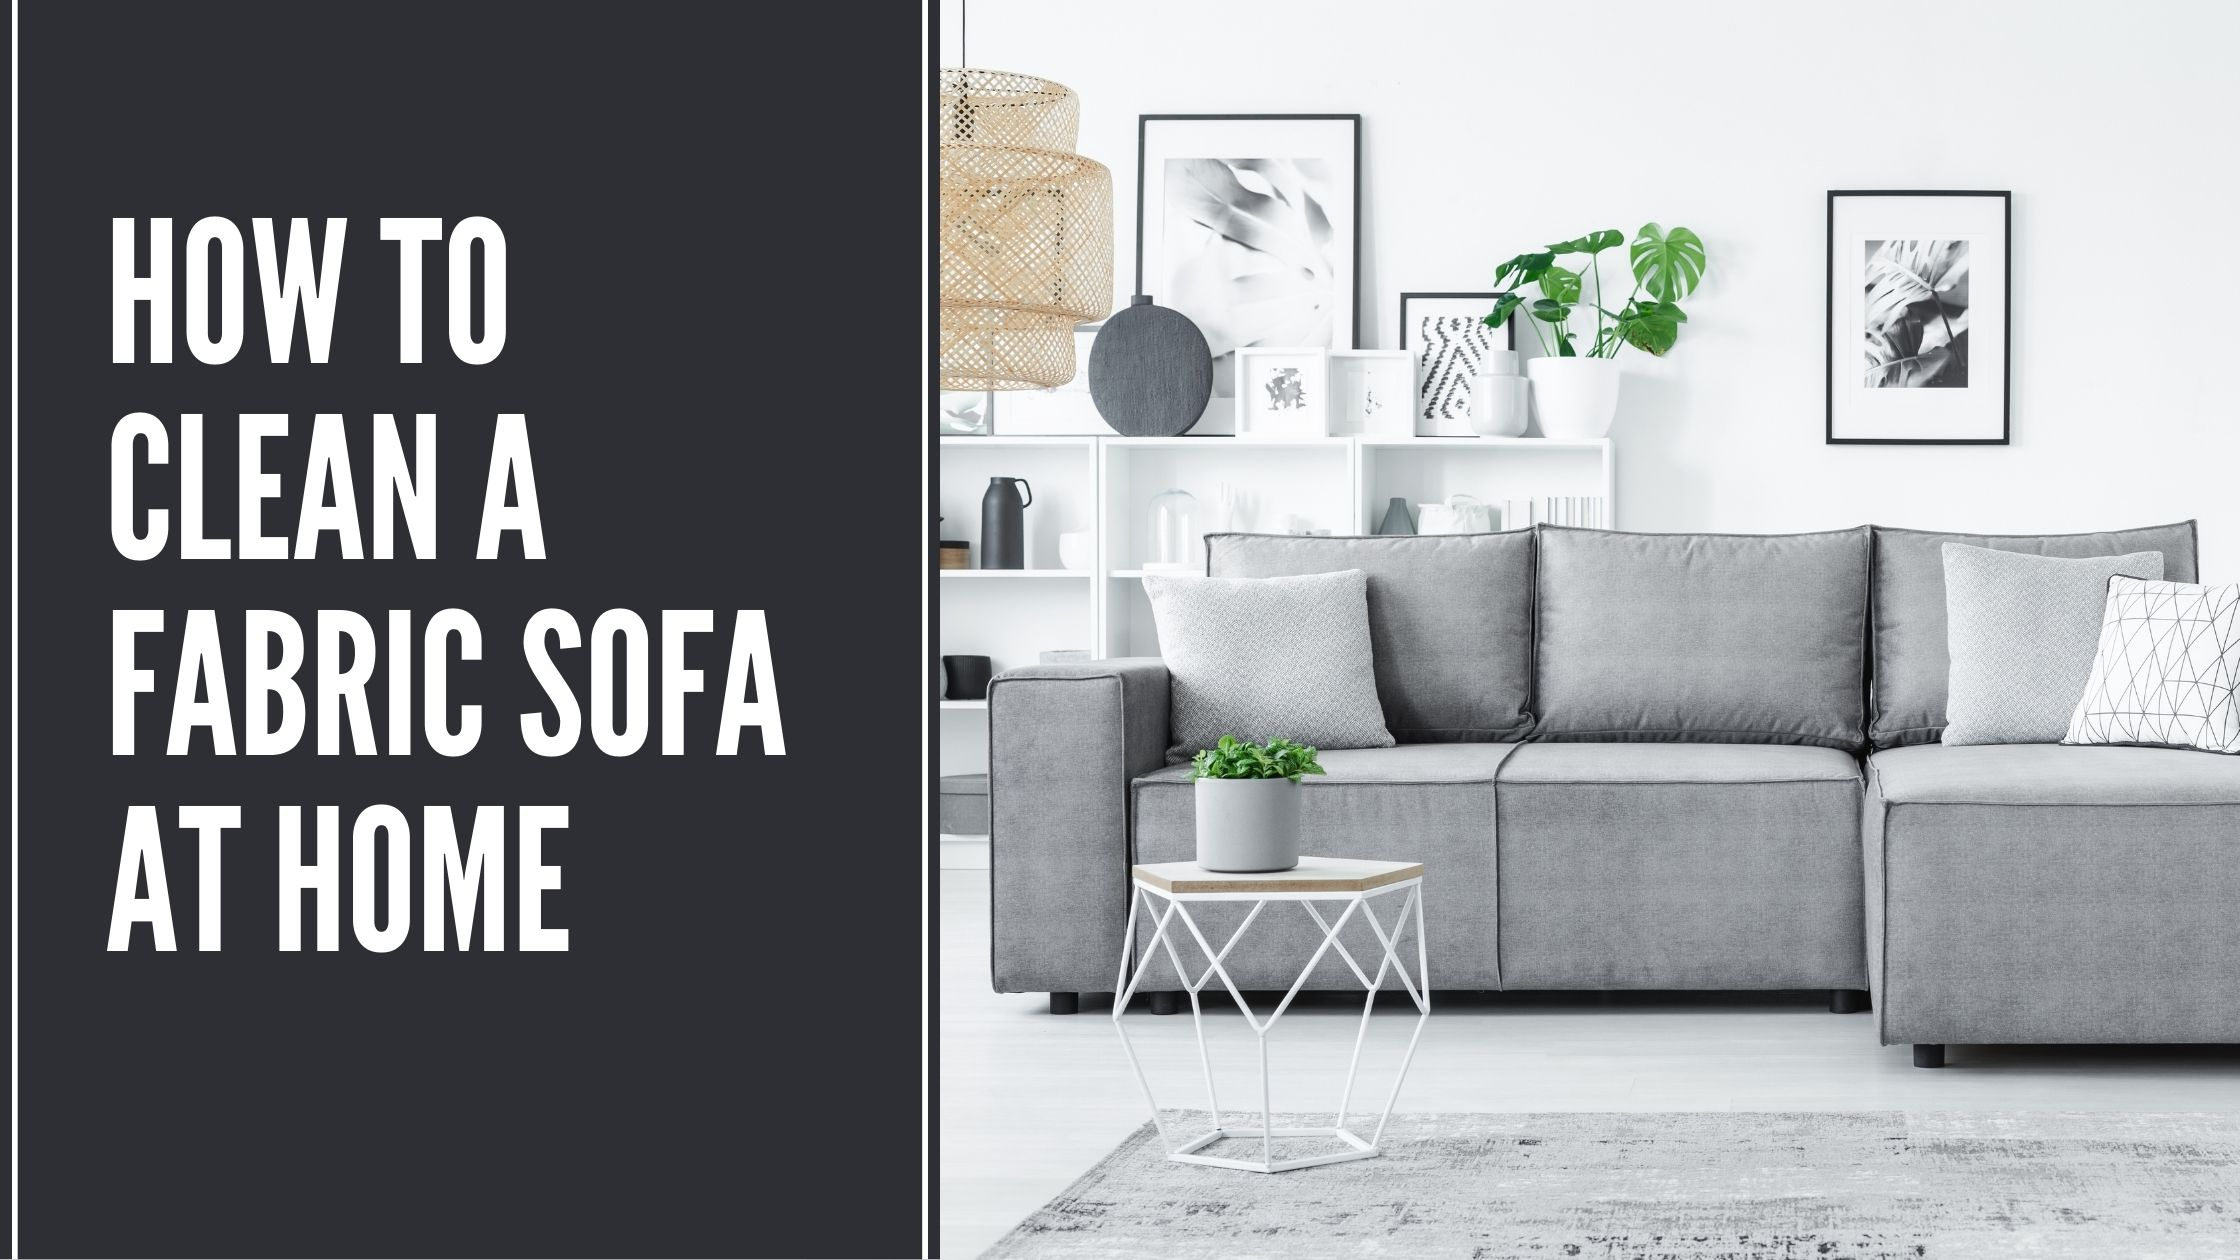 How to Clean a Fabric Sofa at Home